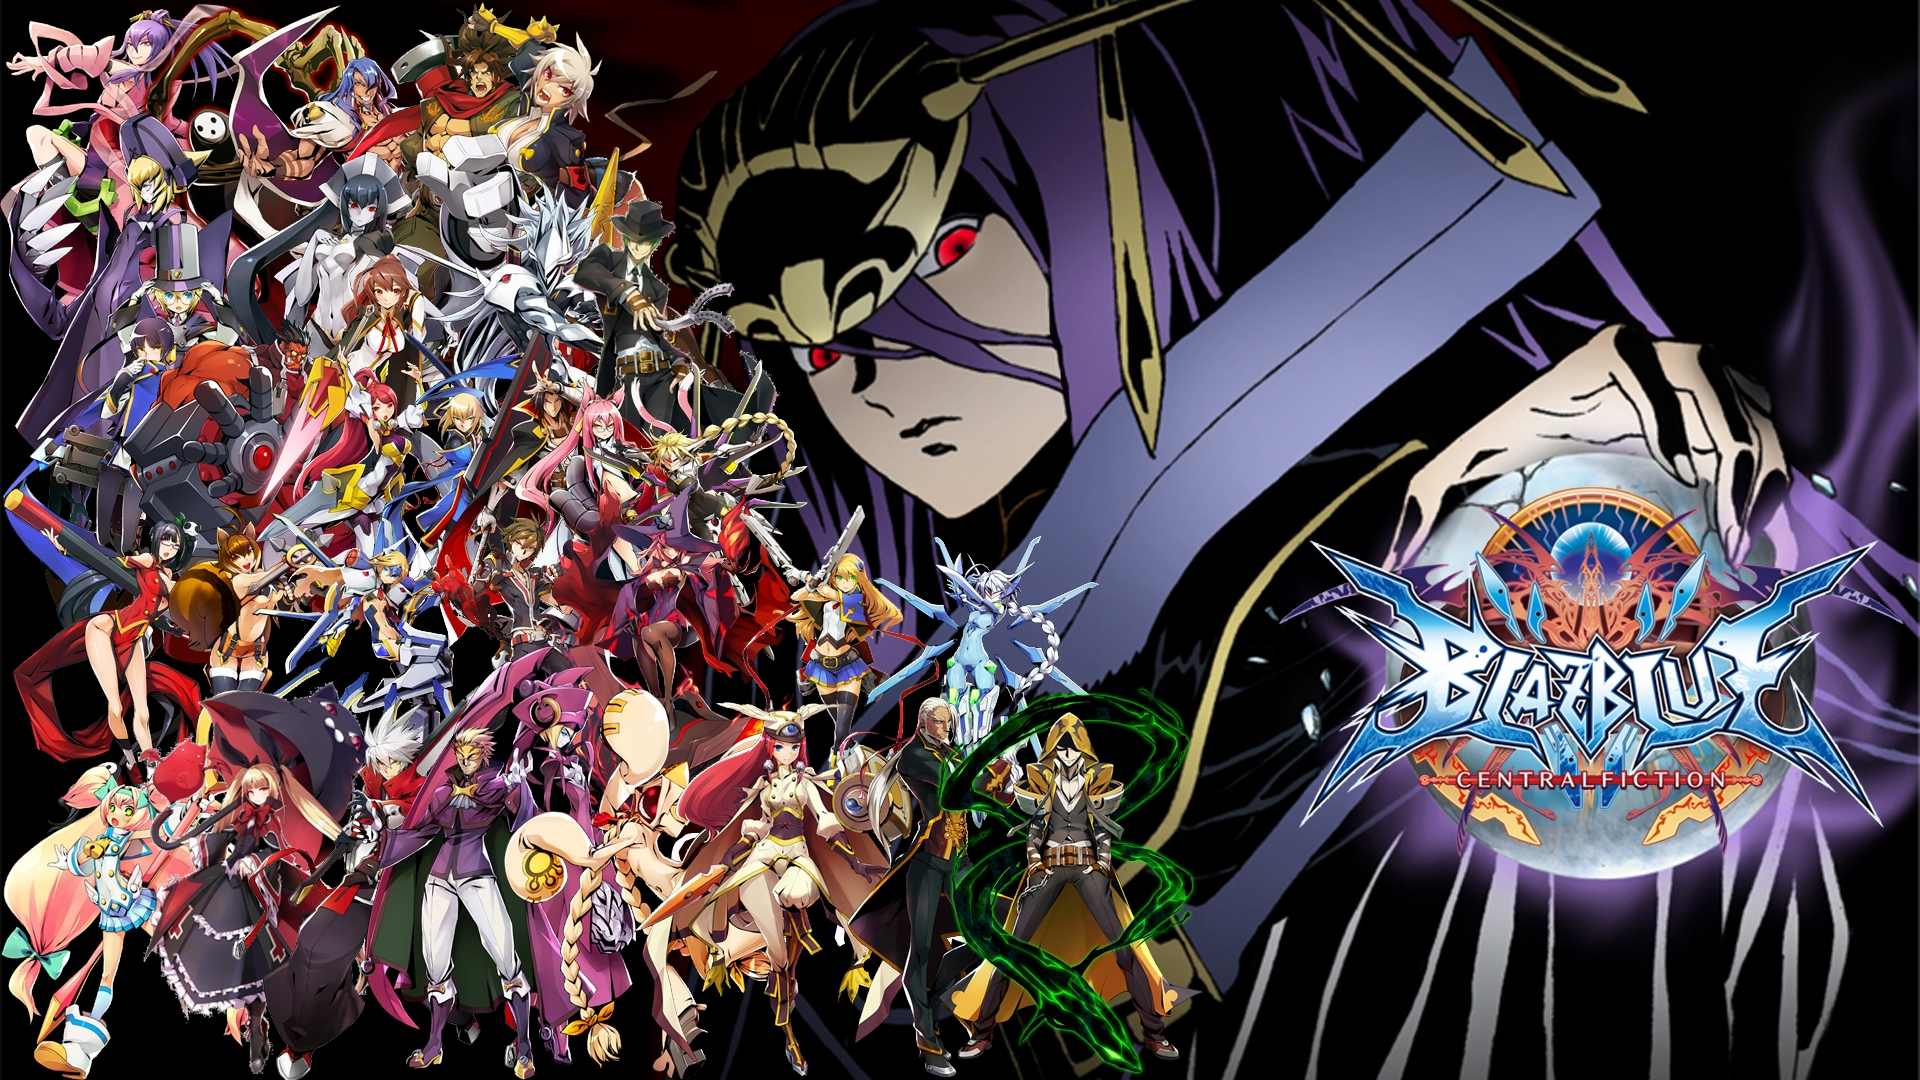 Blazblue Centralfiction Wallpaper By Yoink13 On Deviantart